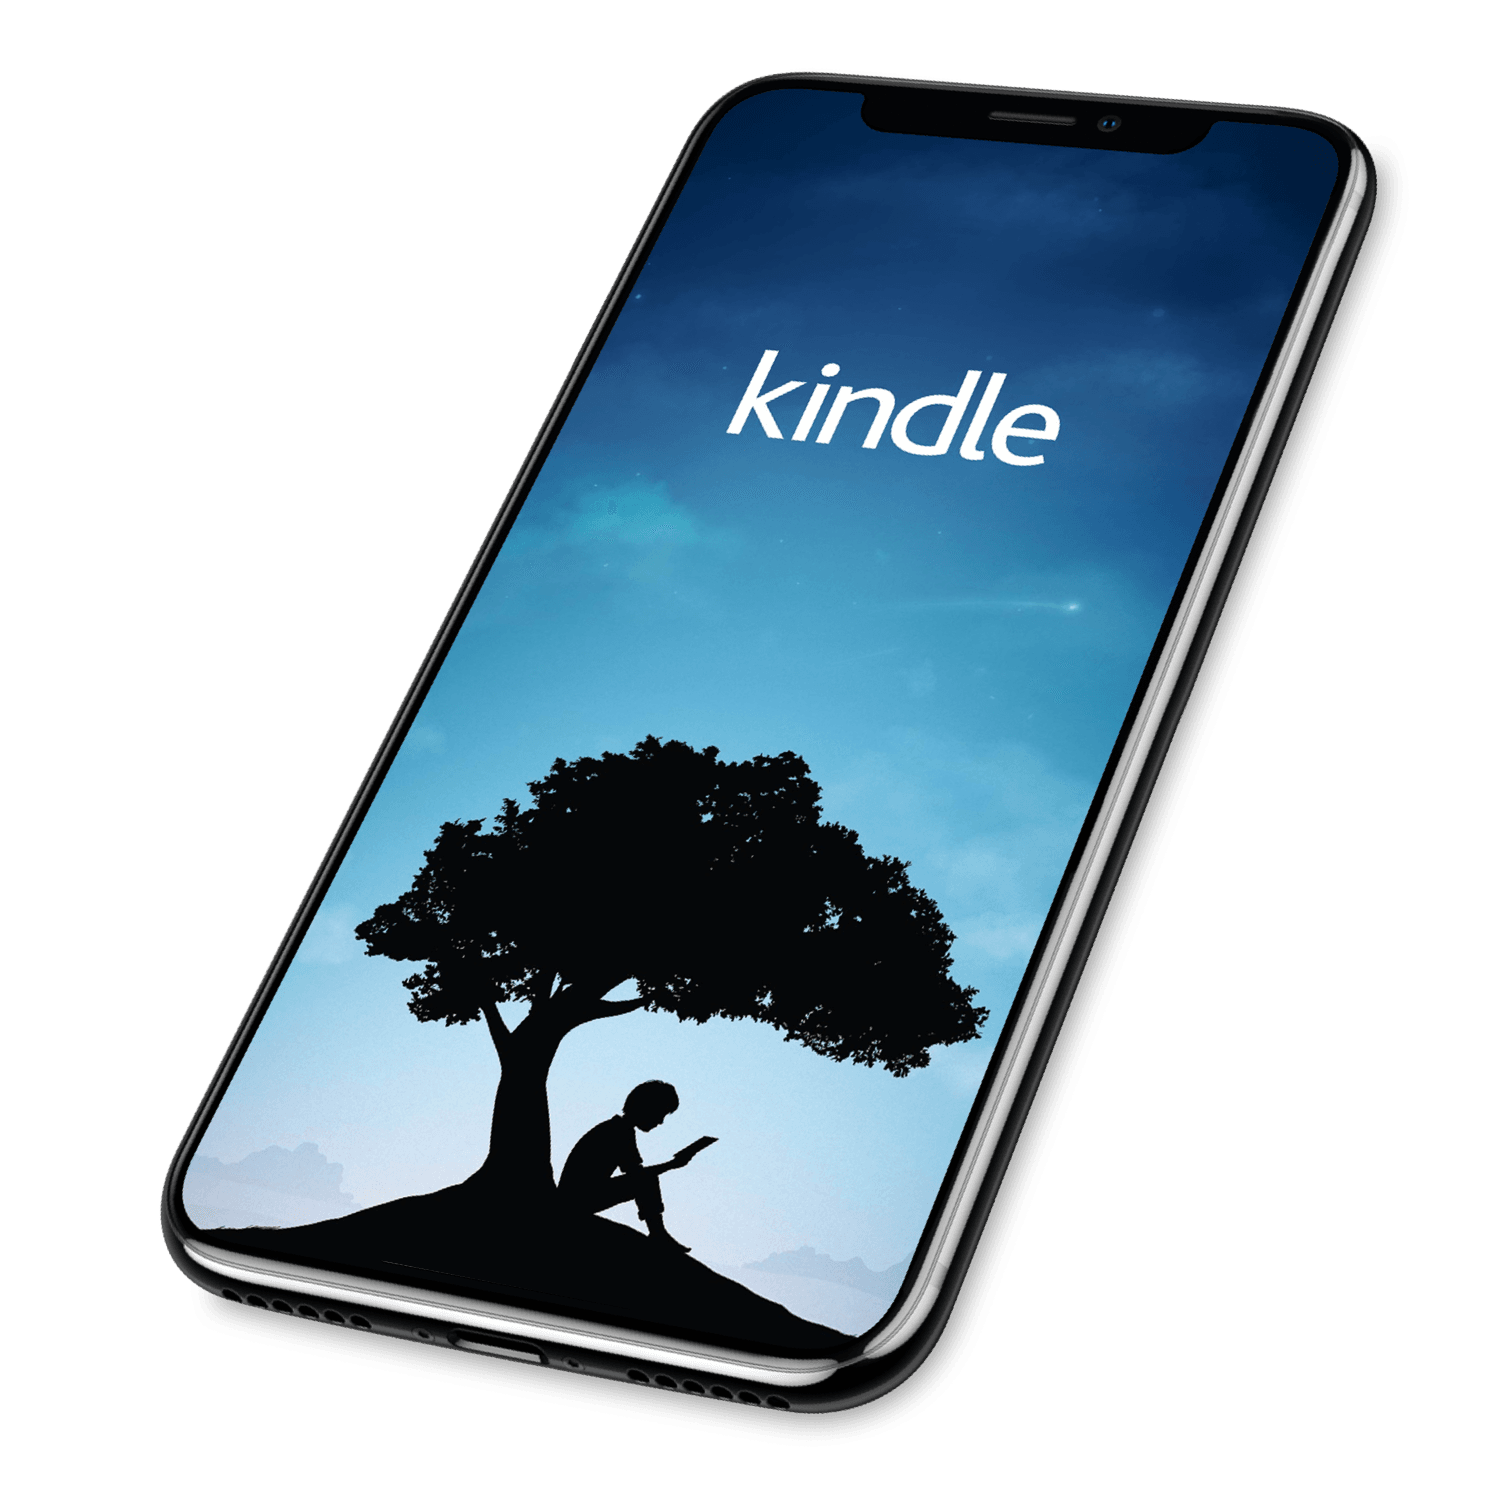 iphone with kindle app